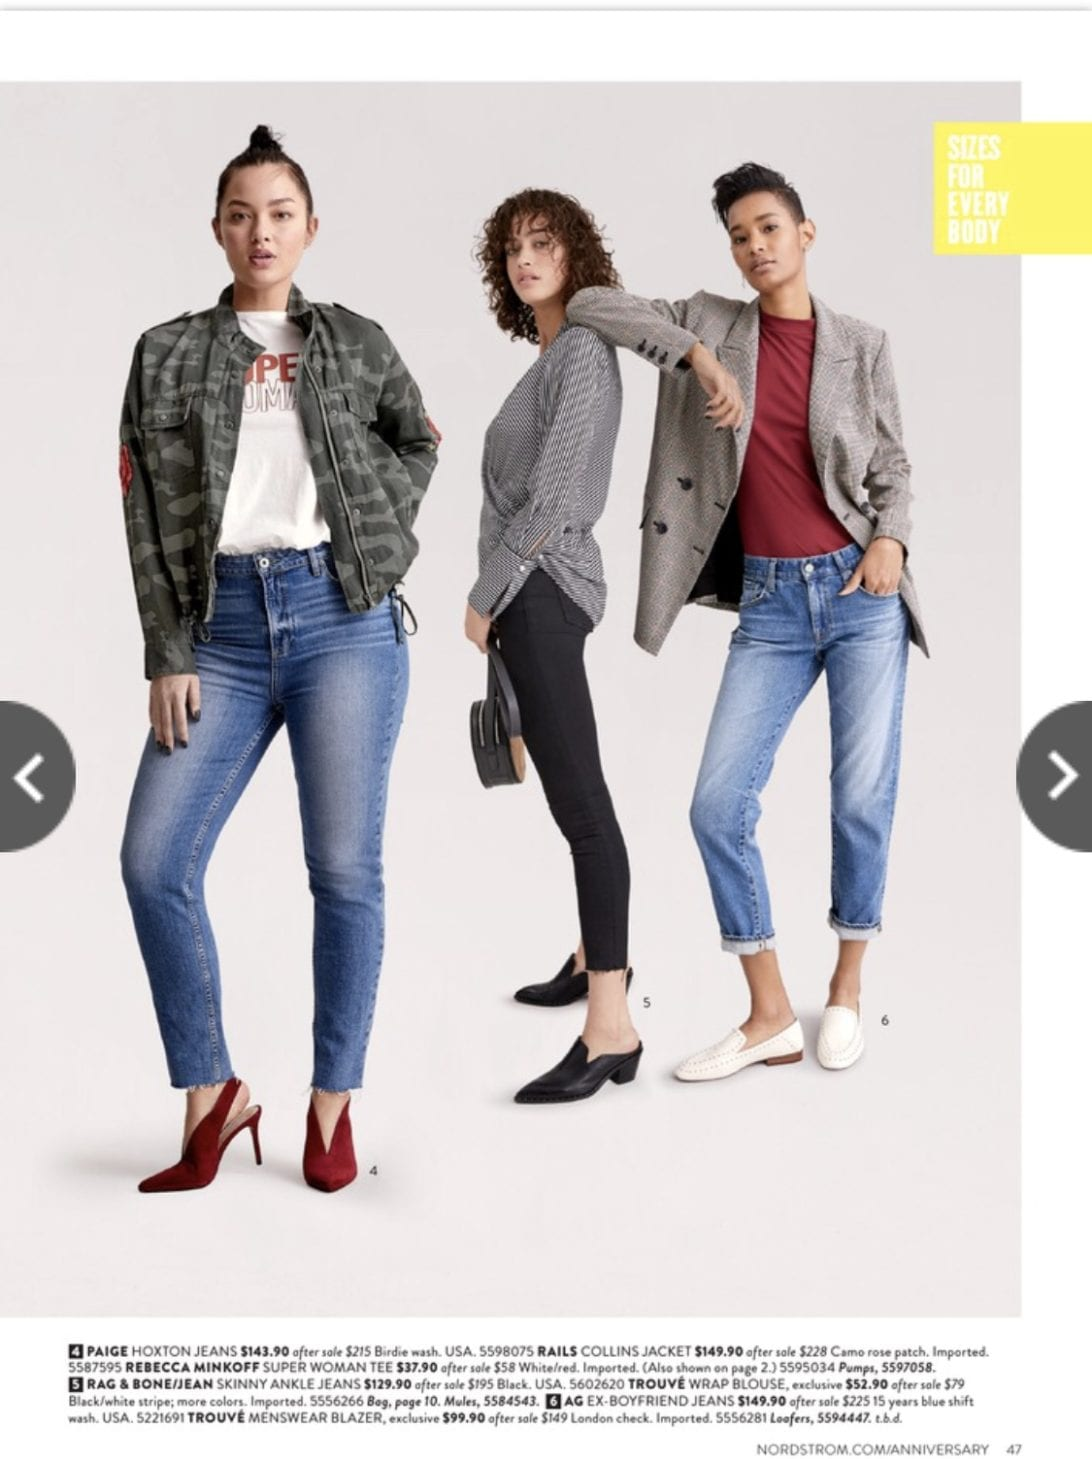 Nordstrom Anniversary Sale catalog, Nordstrom Anniversary Sale Preview, Nordstrom Anniversary Sale 2018, Nordstrom Anniversary Sale tips, shopping tips, sale picks